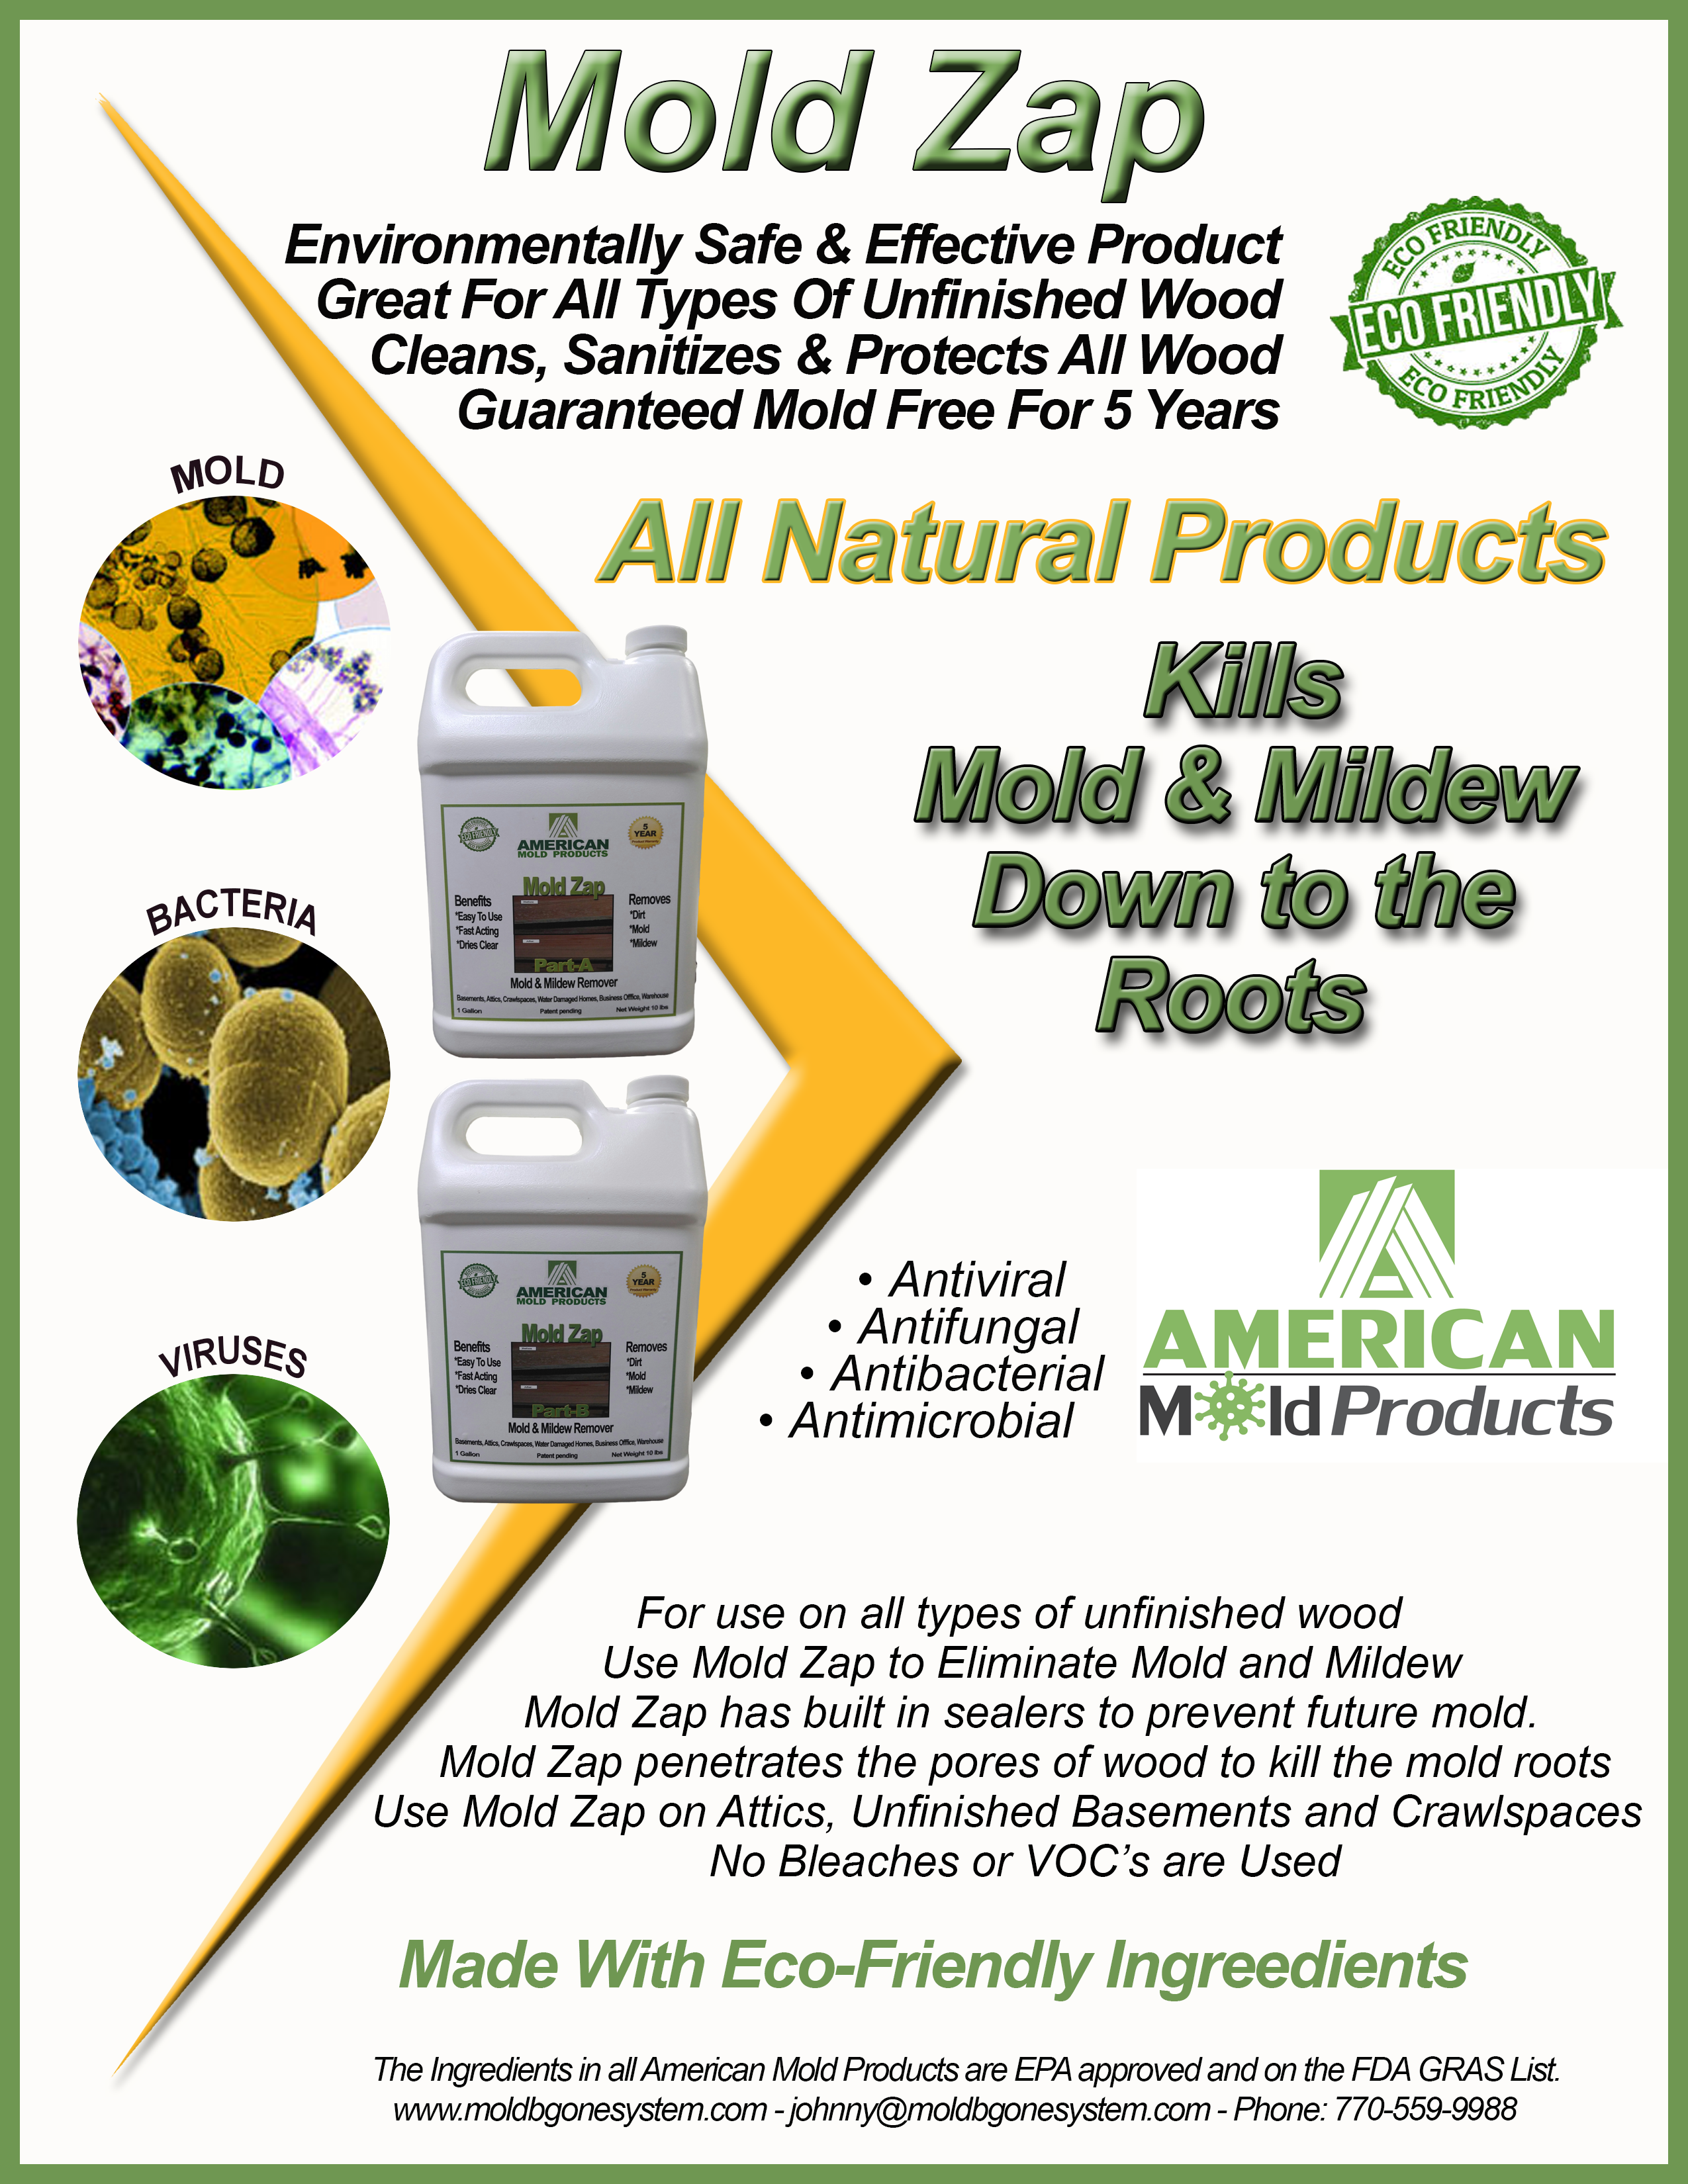 How To Prevent Mold In Basement - Mold zap product label